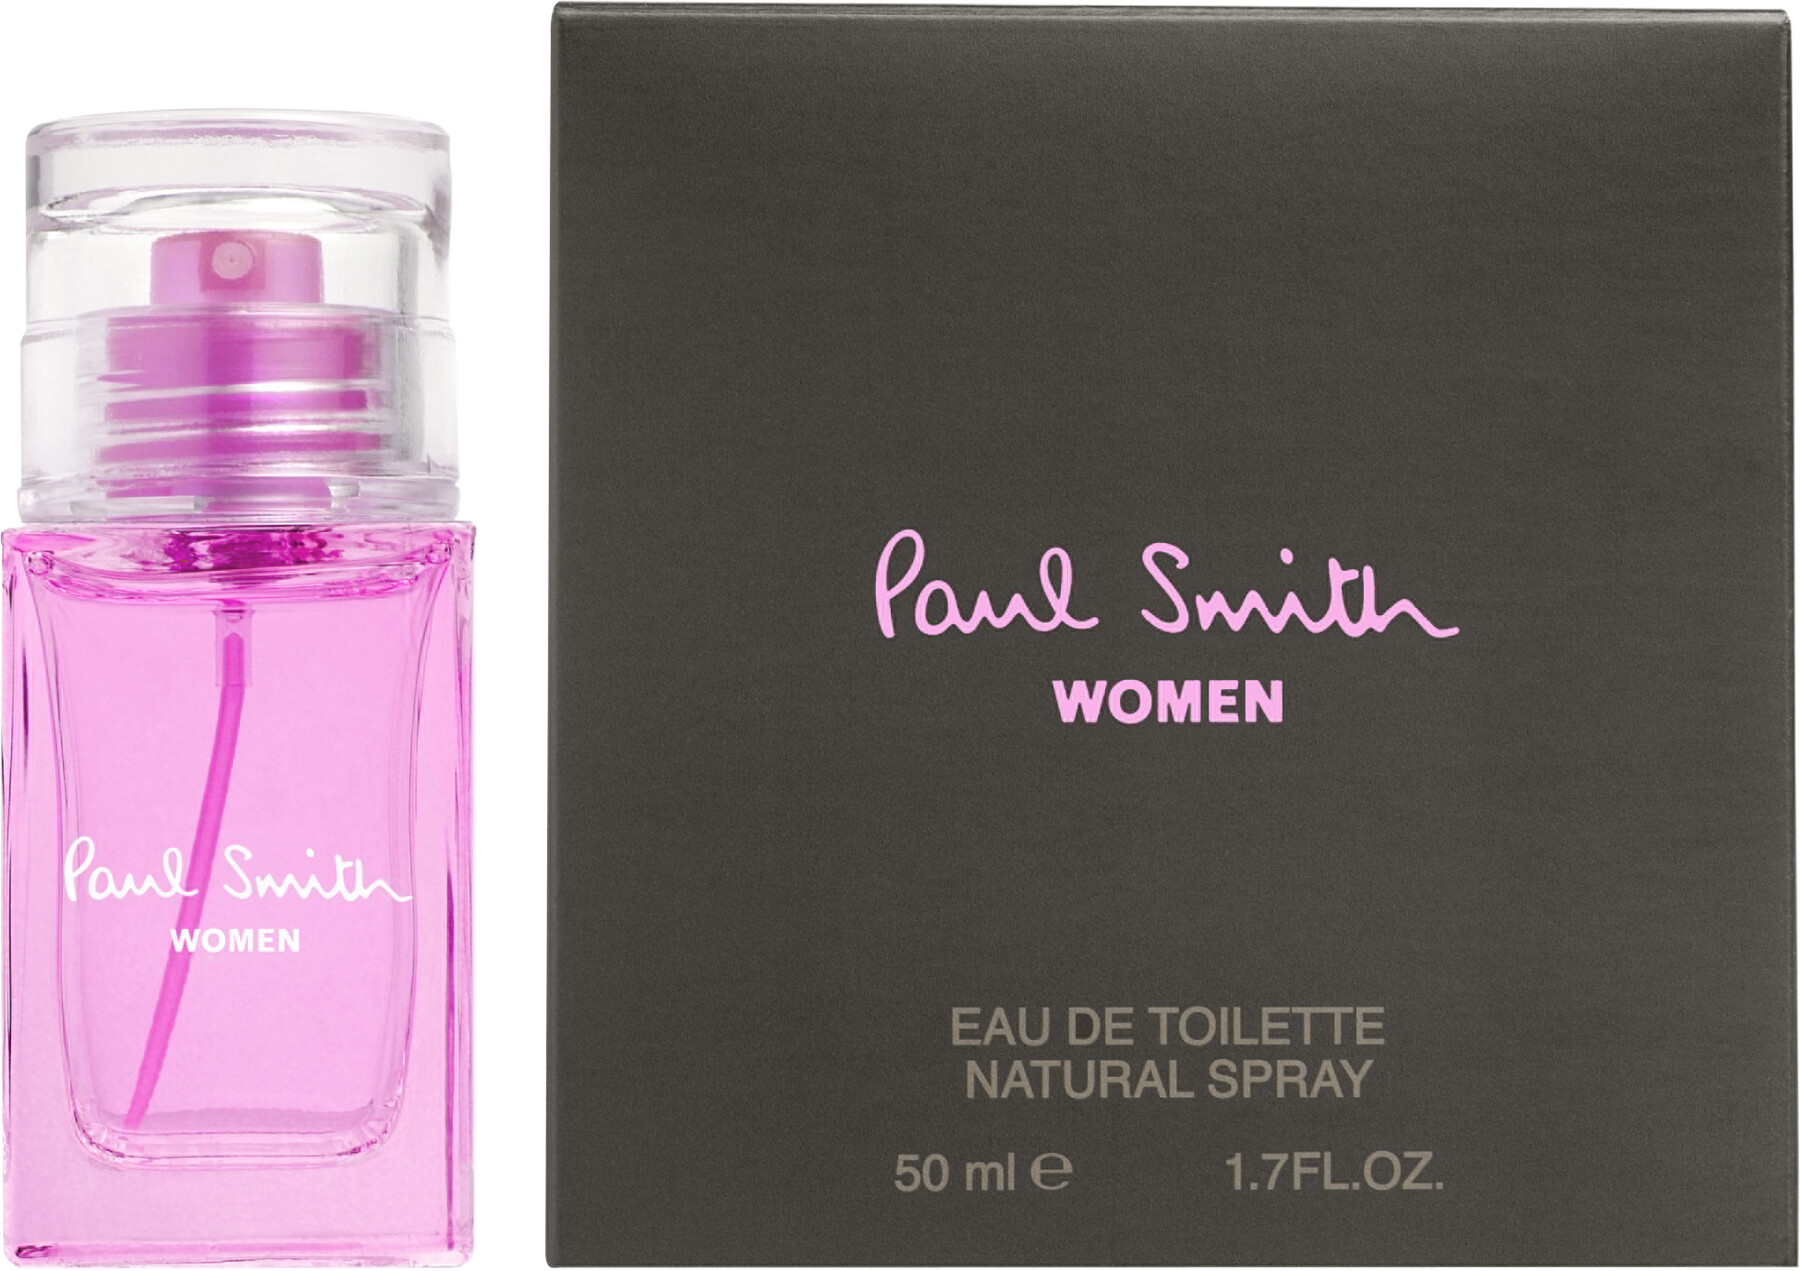 248e03e6d085 Images. Paul Smith Women Eau de Parfum ...